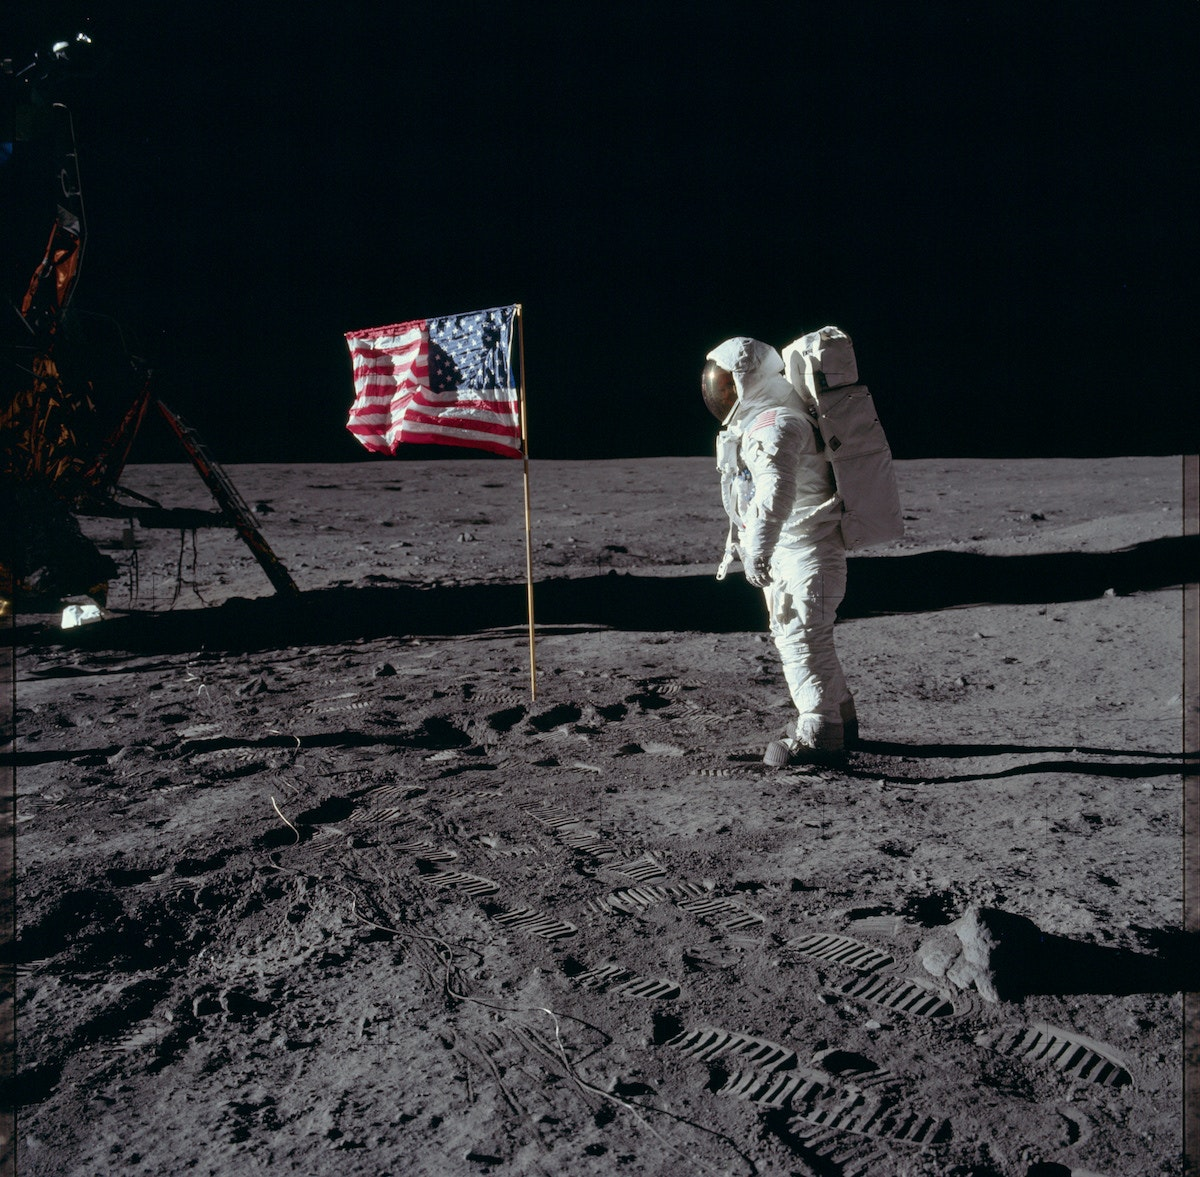 Memorable photo of Buzz Aldrin saluting the U.S. flag on the moon on July 20, 1969 by Neil Armstrong—NASA,